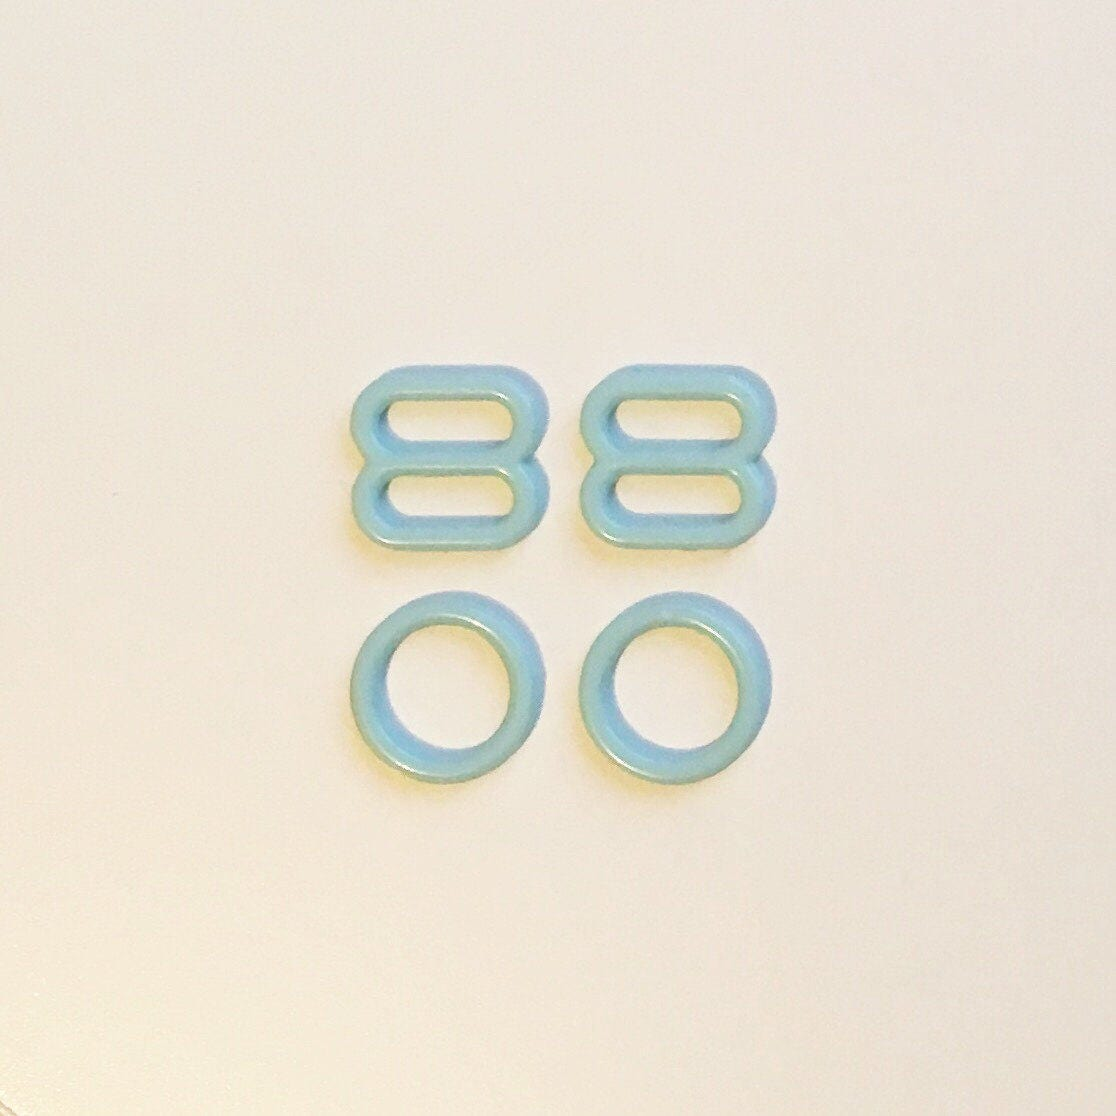 4f61e1d6bce79 1 Set of Blue Rings and Sliders    8mm    Coated Metal    Bra Making  Supplies